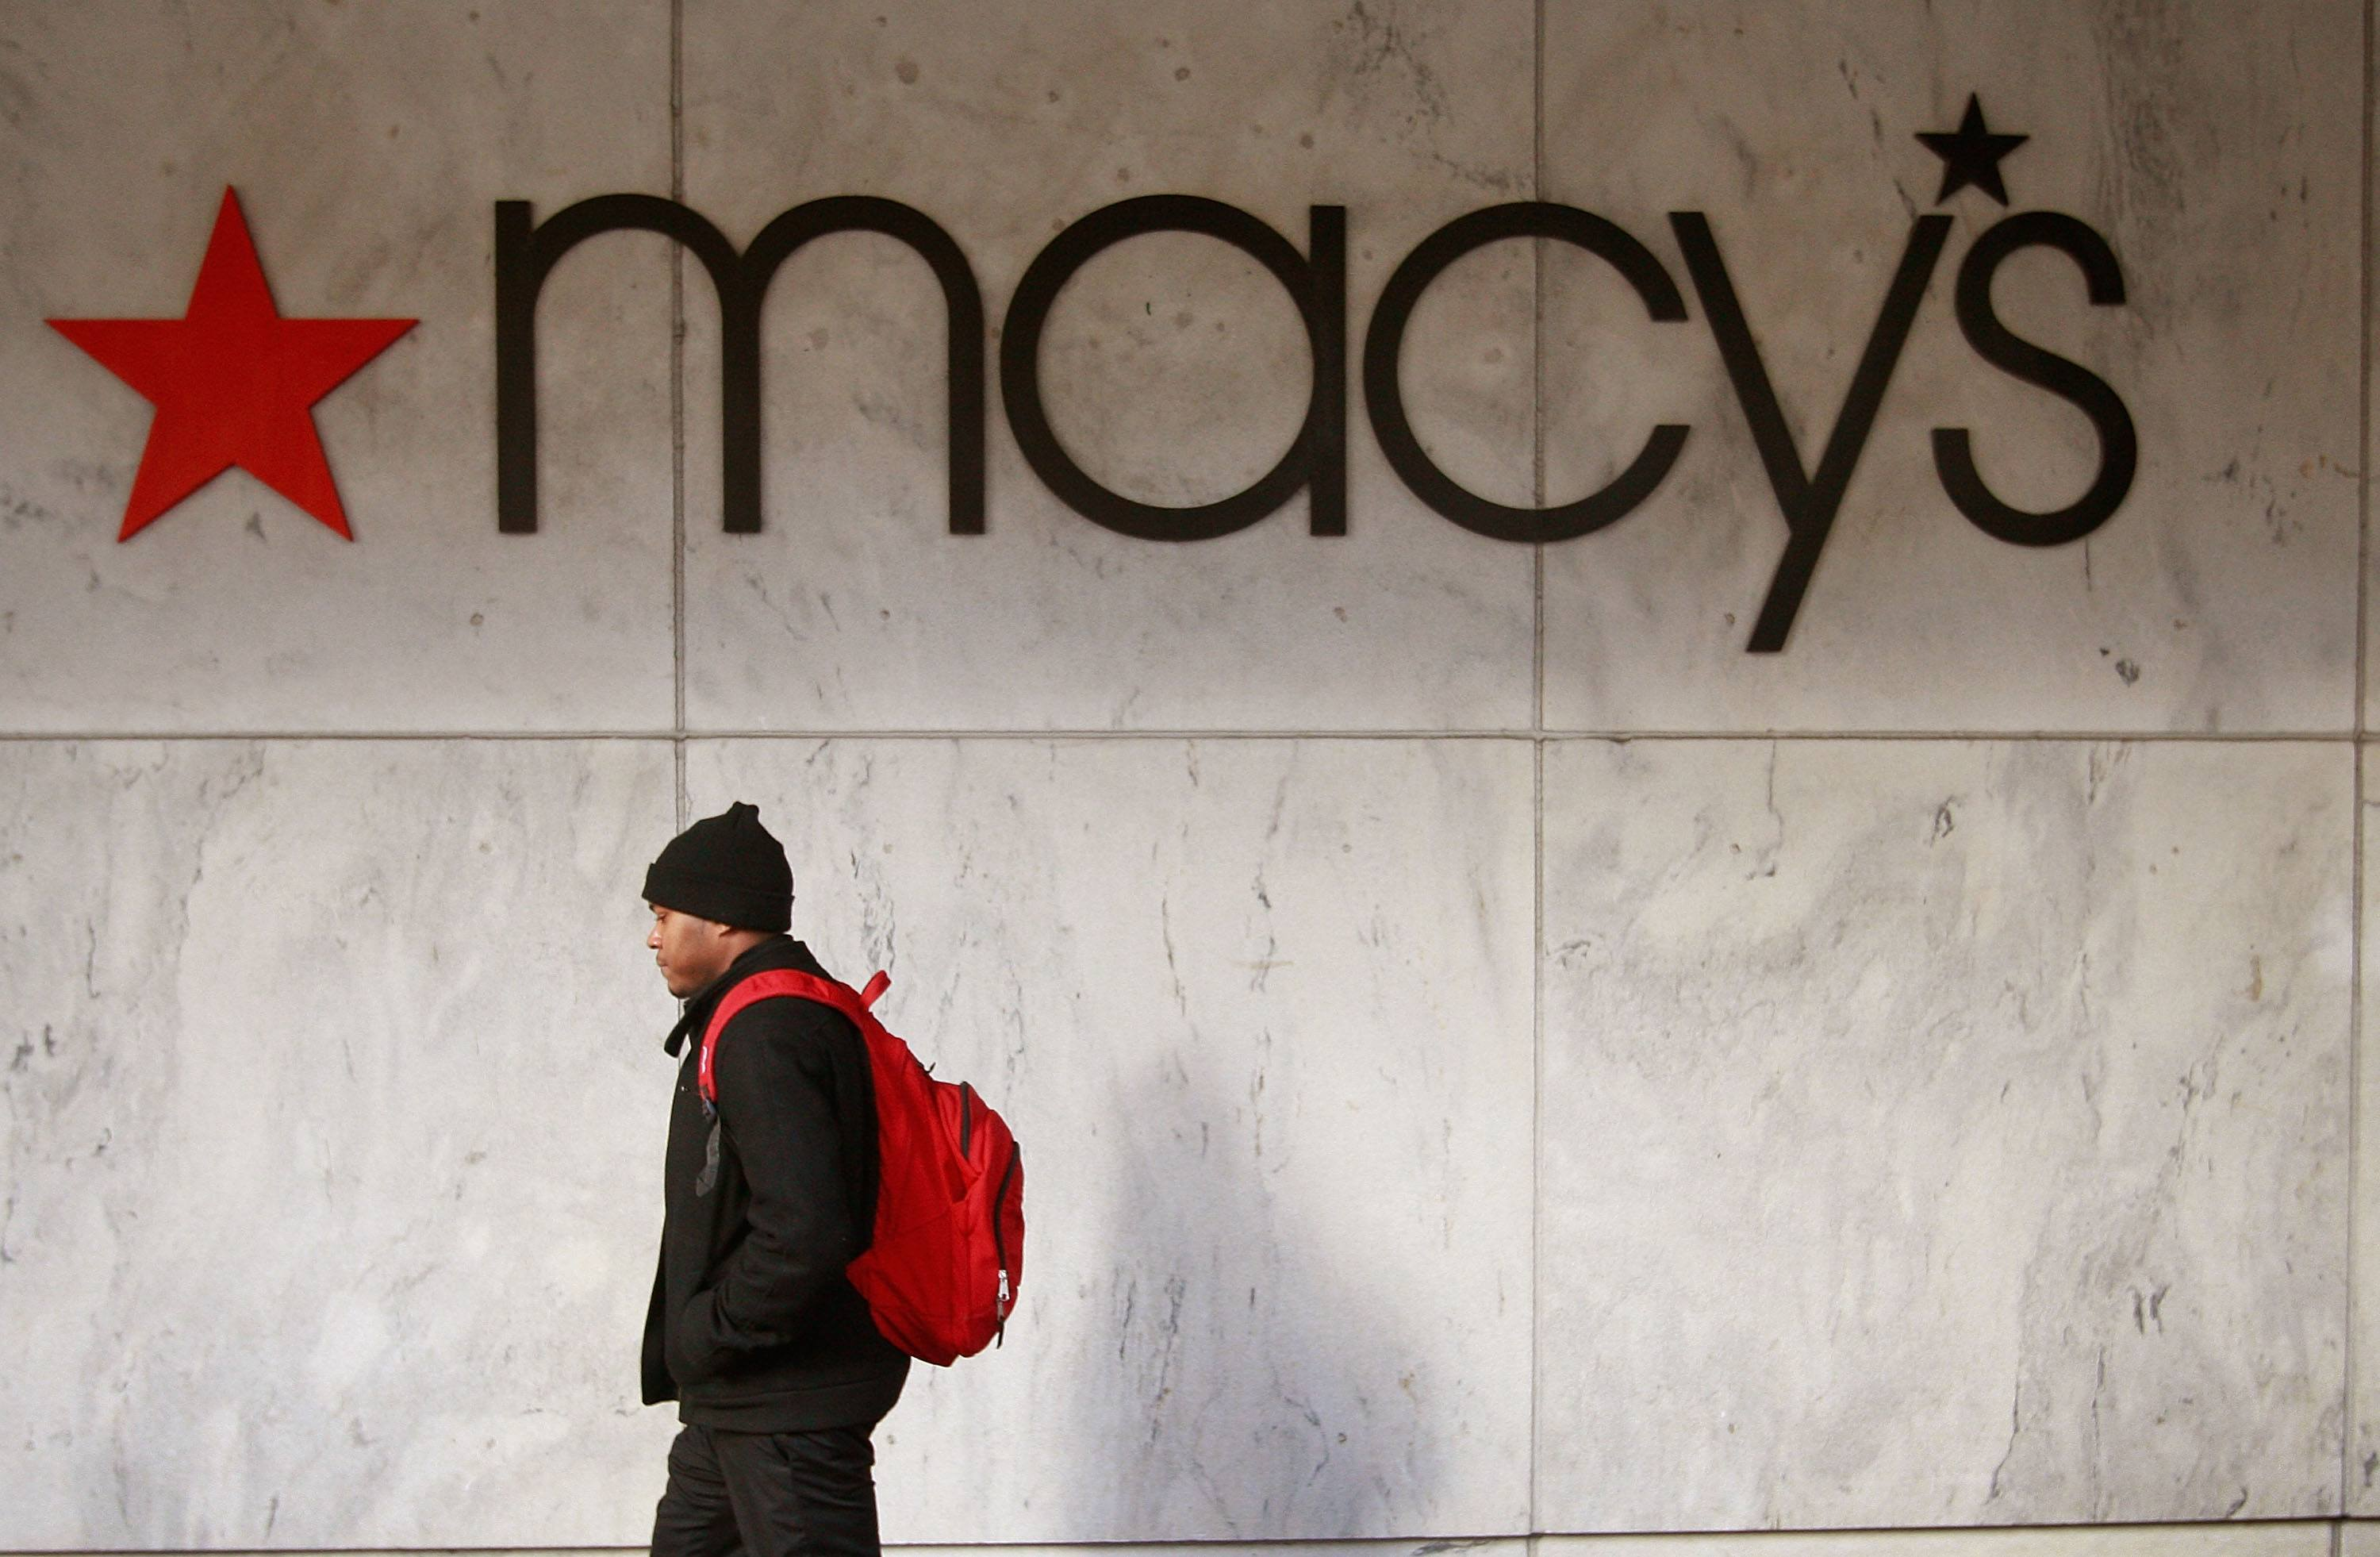 Macys To Slash 7000 Jobs In Order To Cut Costs